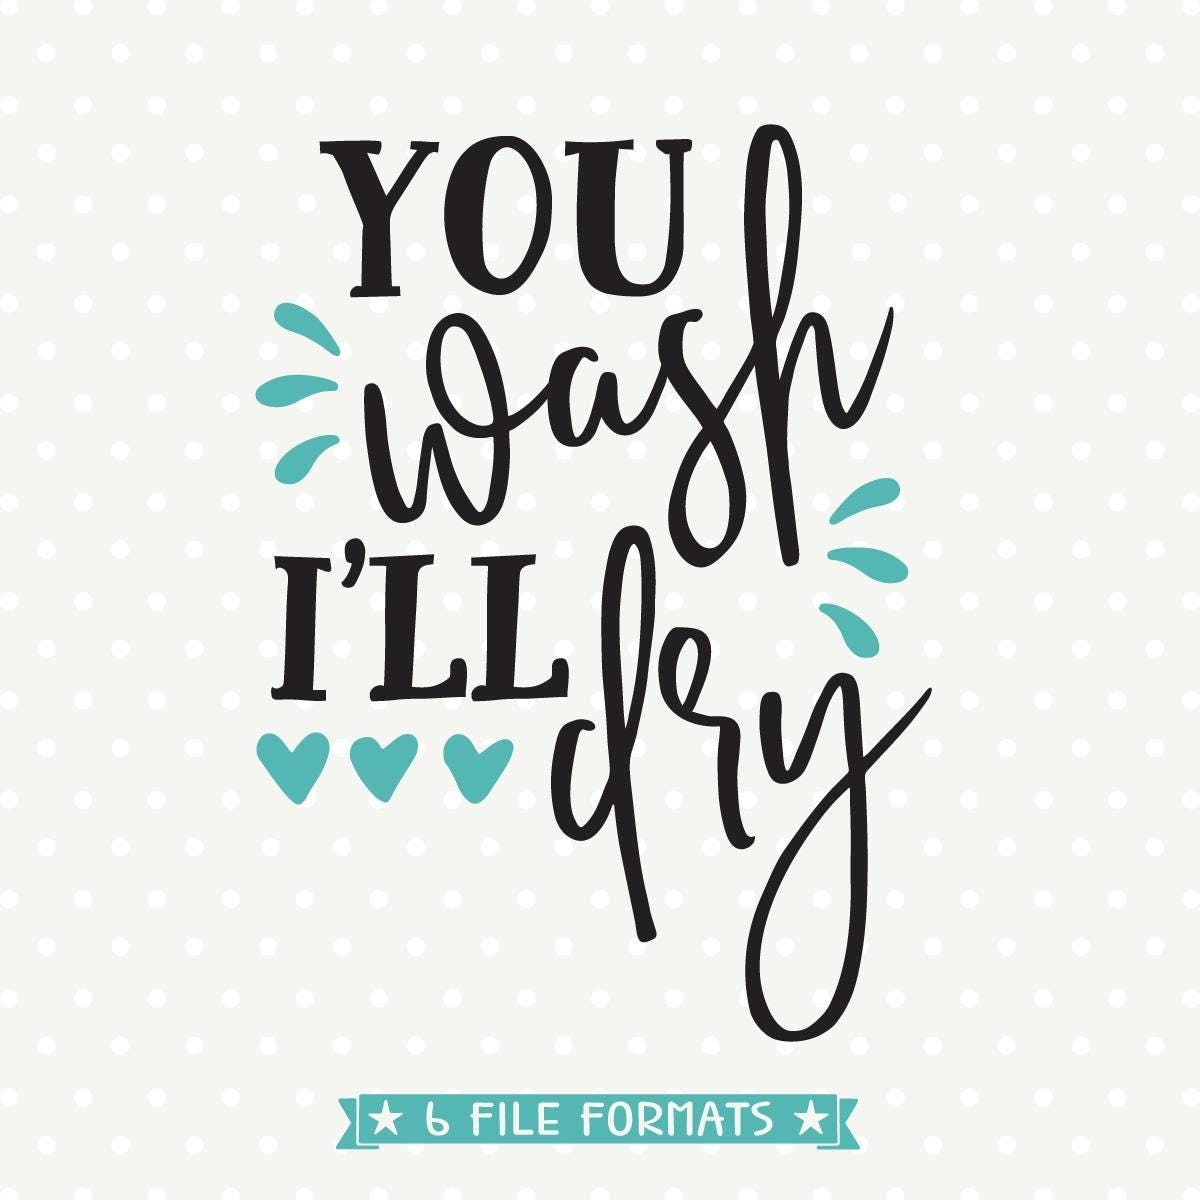 Kitchen Tea Quotes For Cards: You Wash I'll Dry SVG Tea Towel Cuttable Kitchen Svg